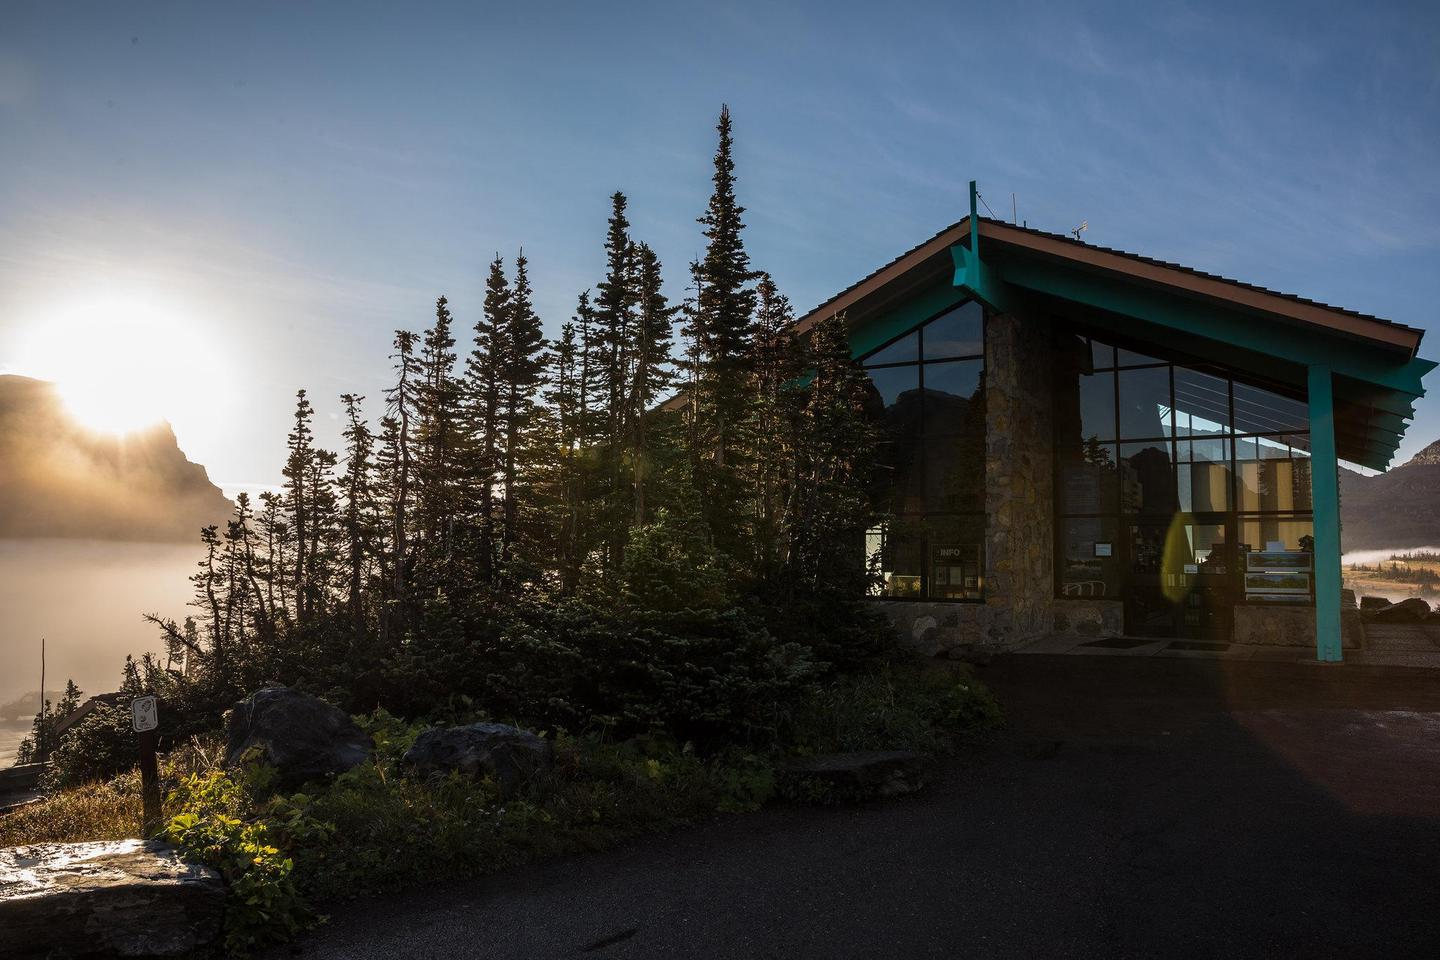 Logan Pass Visitor Center at SunriseThe Logan Pass Visitor Center at sunrise on a late summer morning. The visitor center has large windows and is surrounded by small alpine trees.